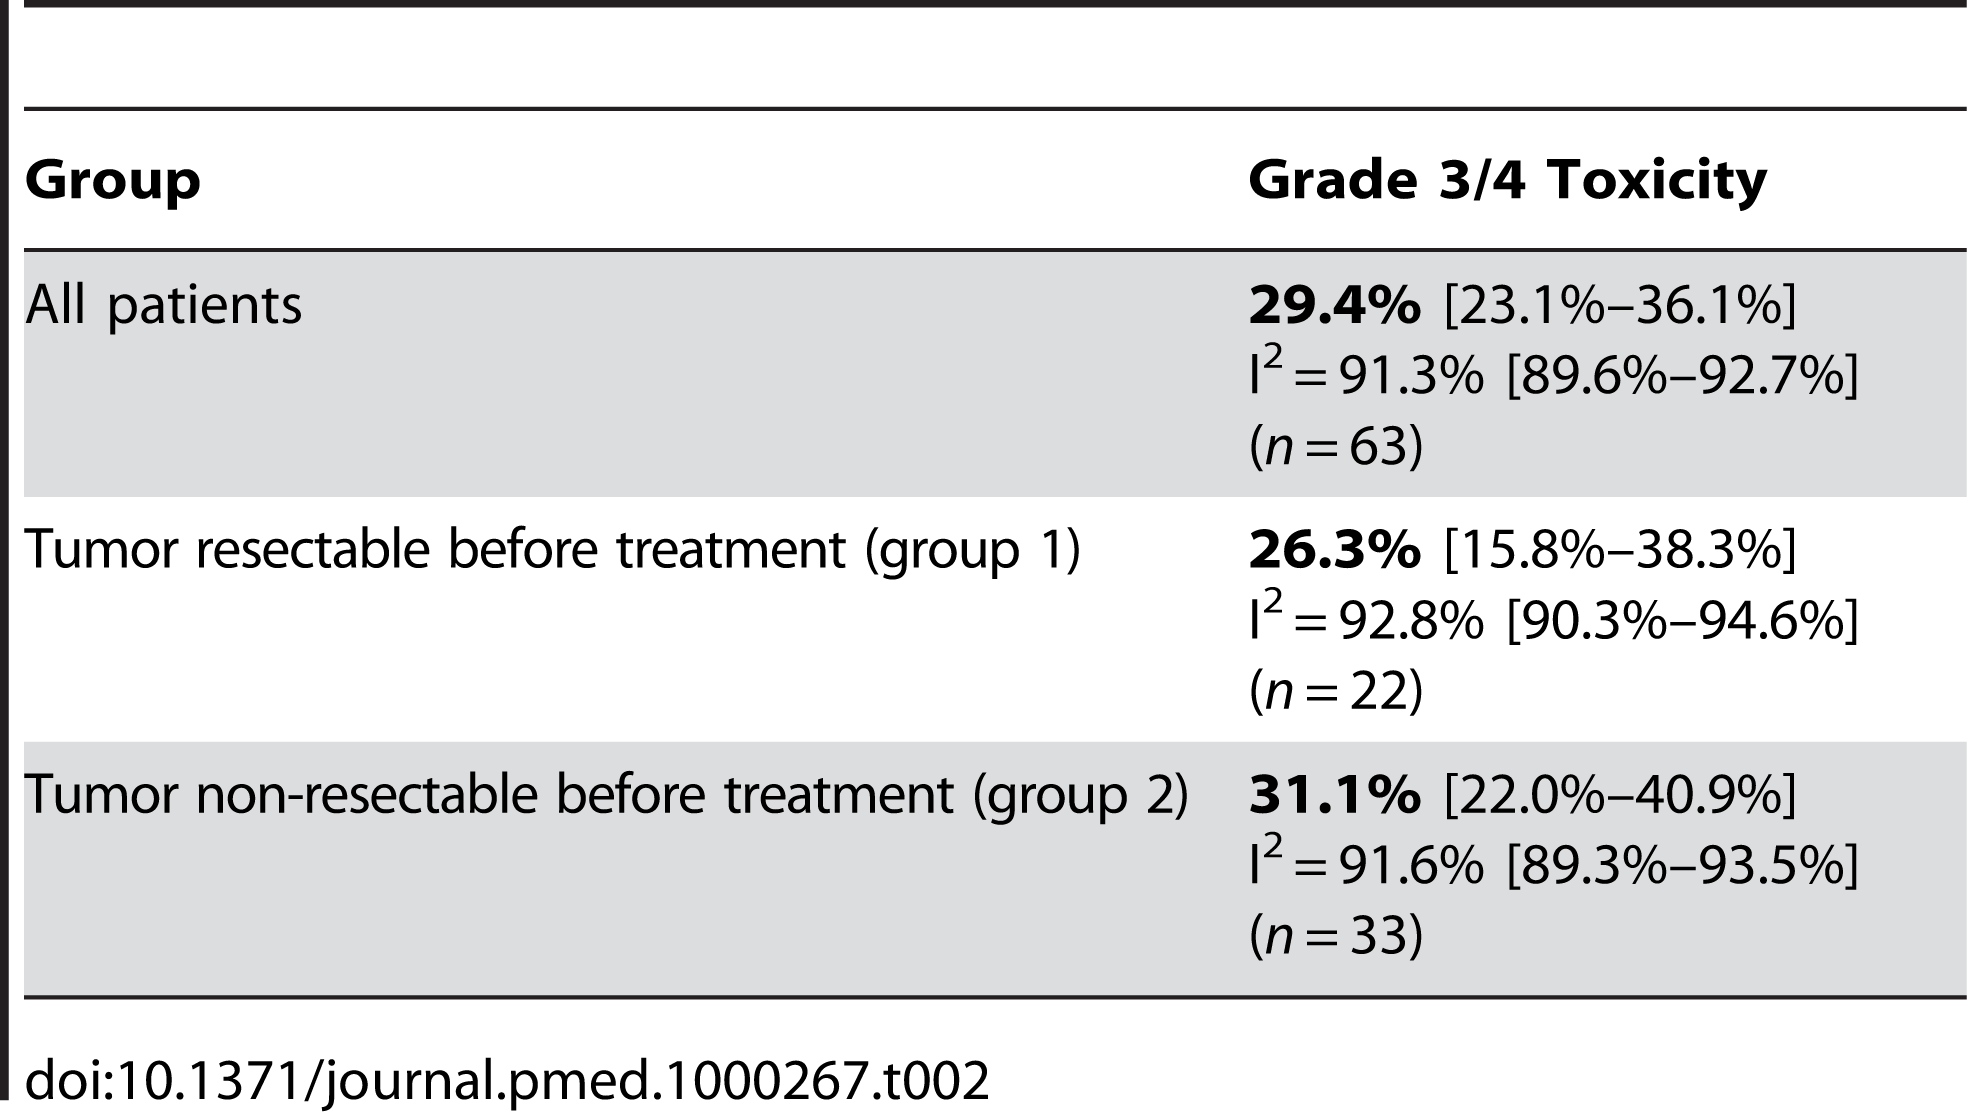 Estimates of grade 3/4 toxicity of neoadjuvant treatment including the 95% confidence interval from the random effect model and number of assessable studies for each group (<i>n</i>).